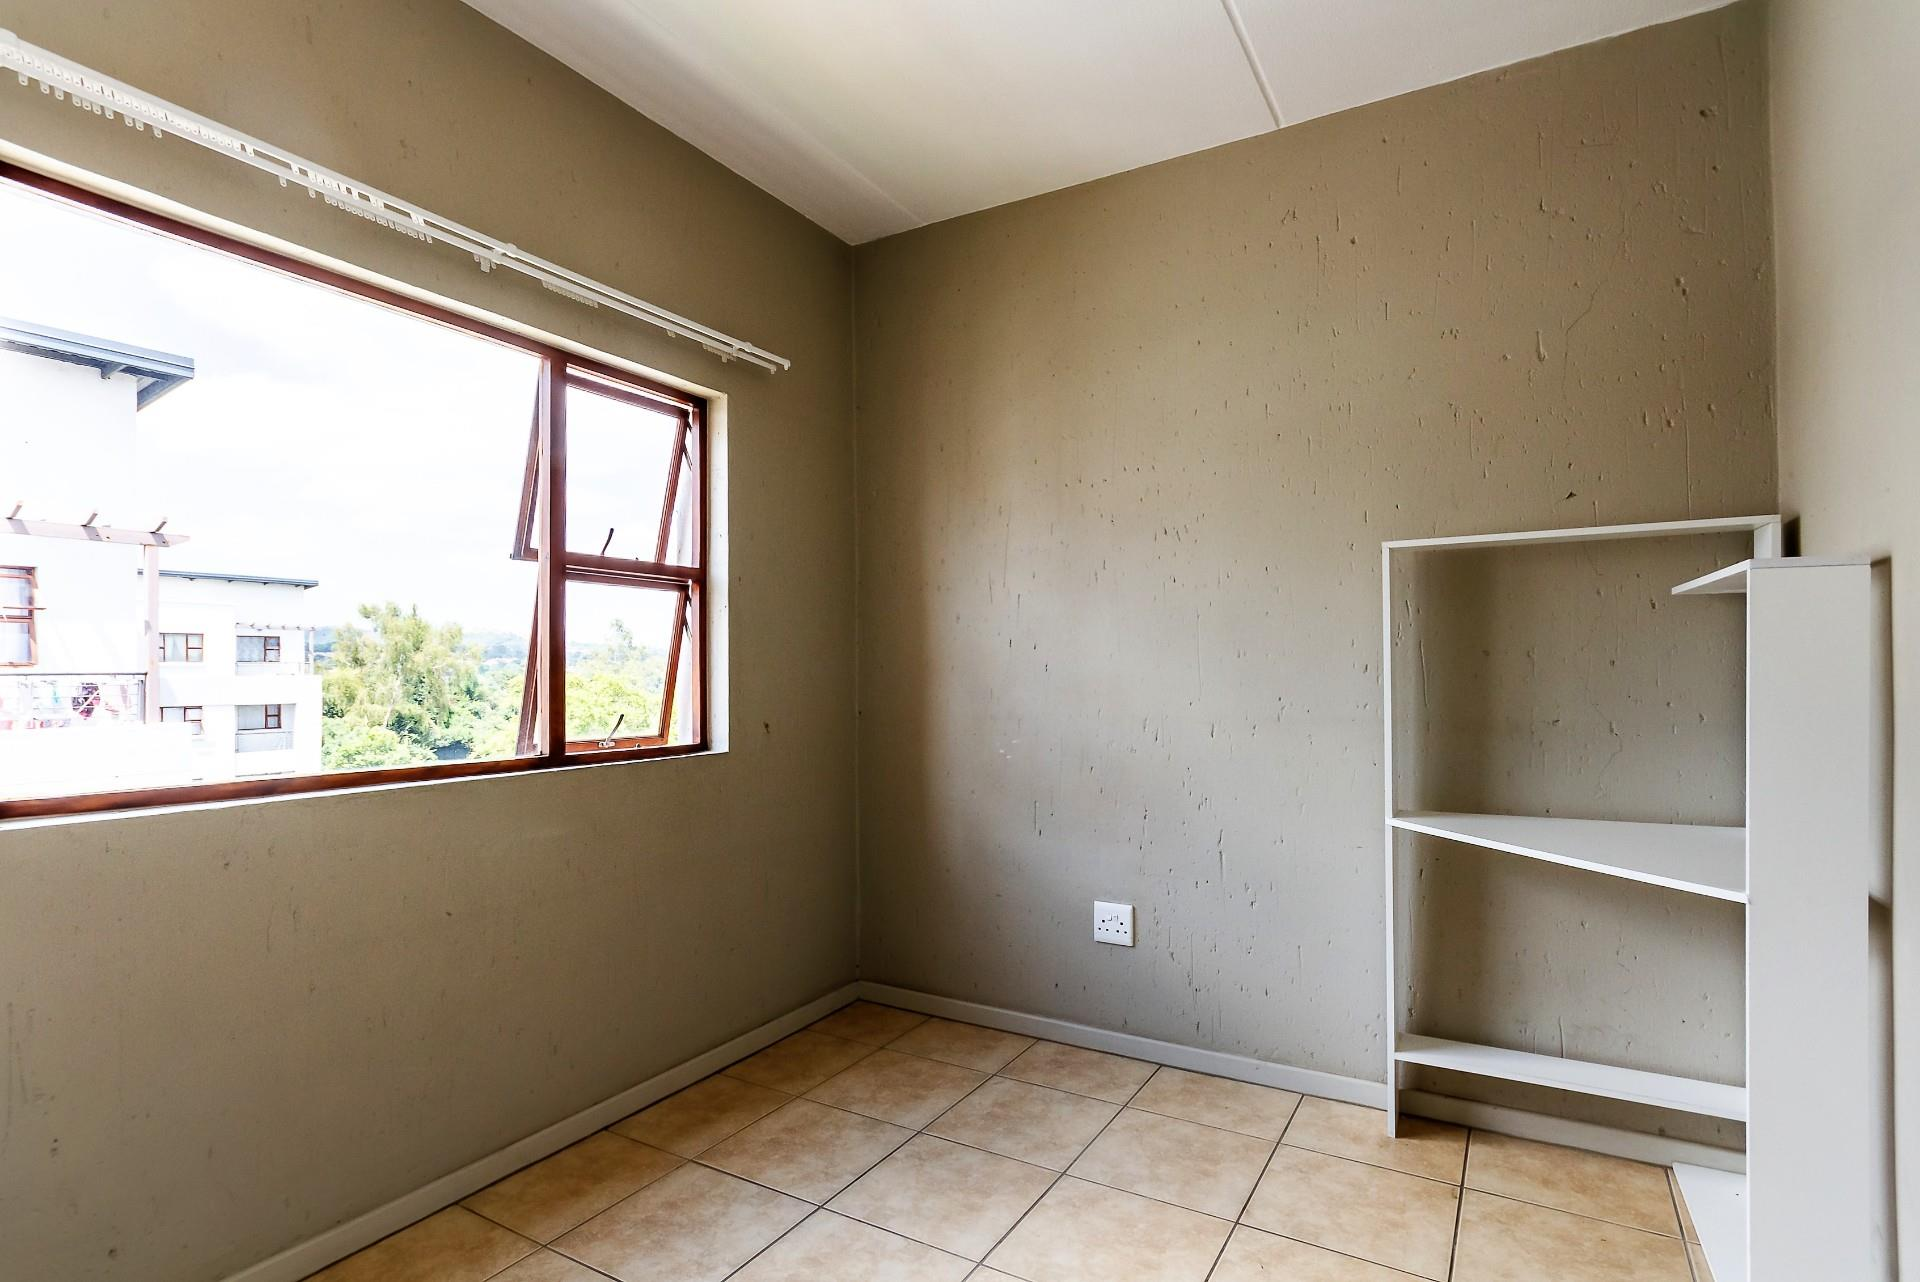 2 Bedroom Townhouse For Sale in Ferndale